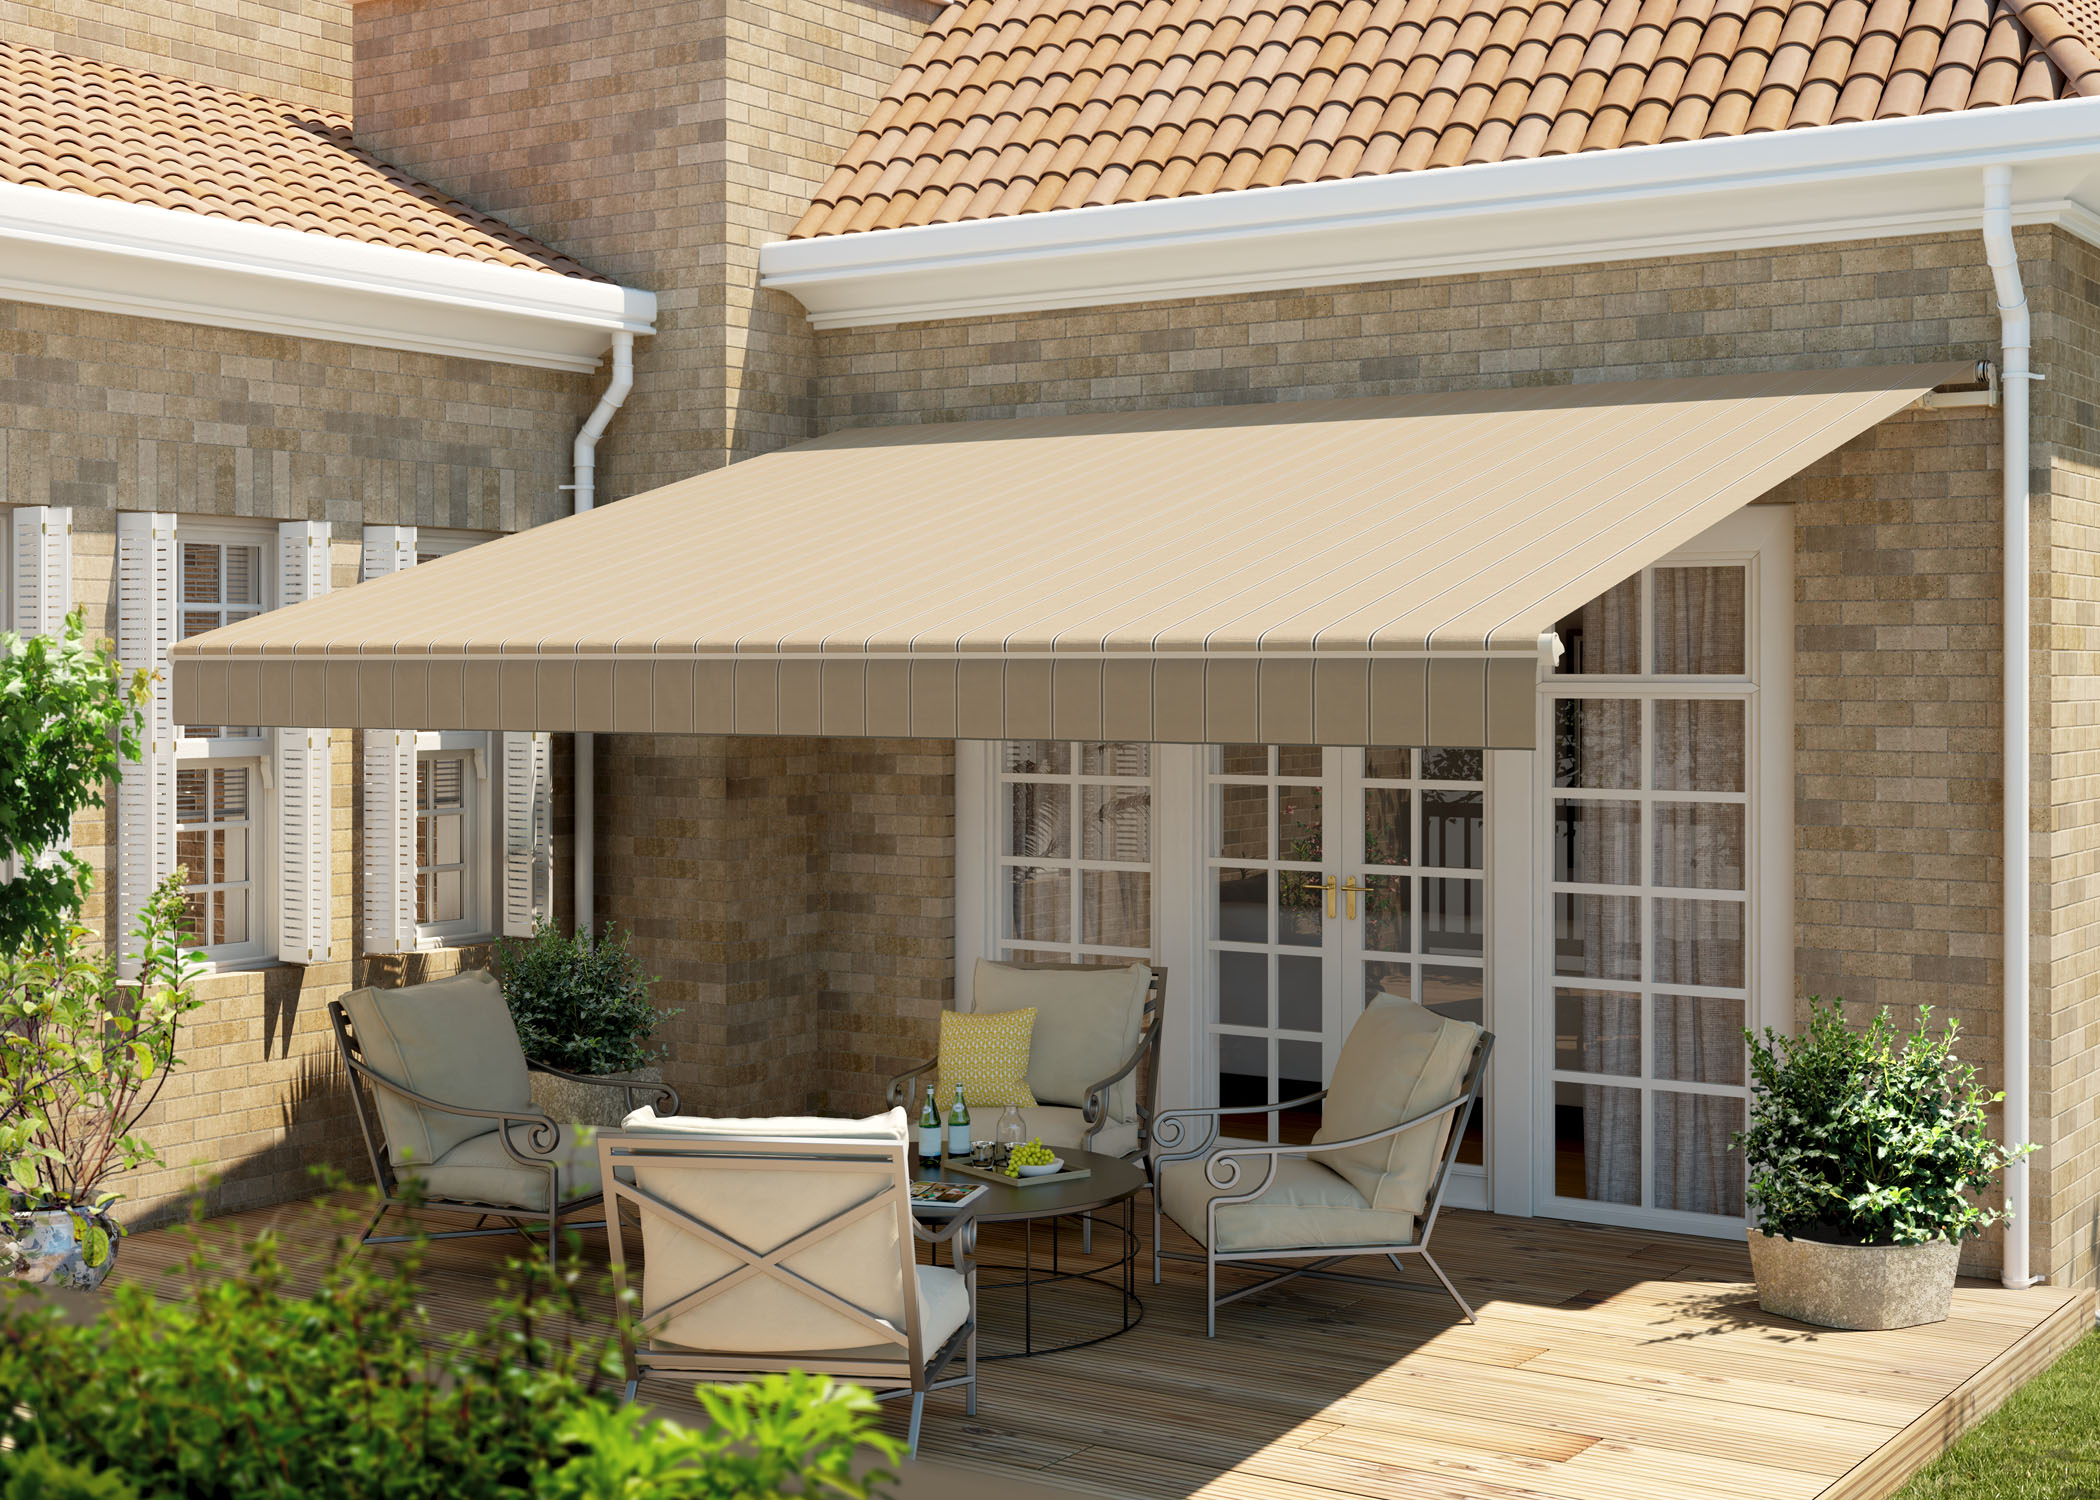 contractors blue s awnings sunsetter remodeling of a awning retractable installing benefits